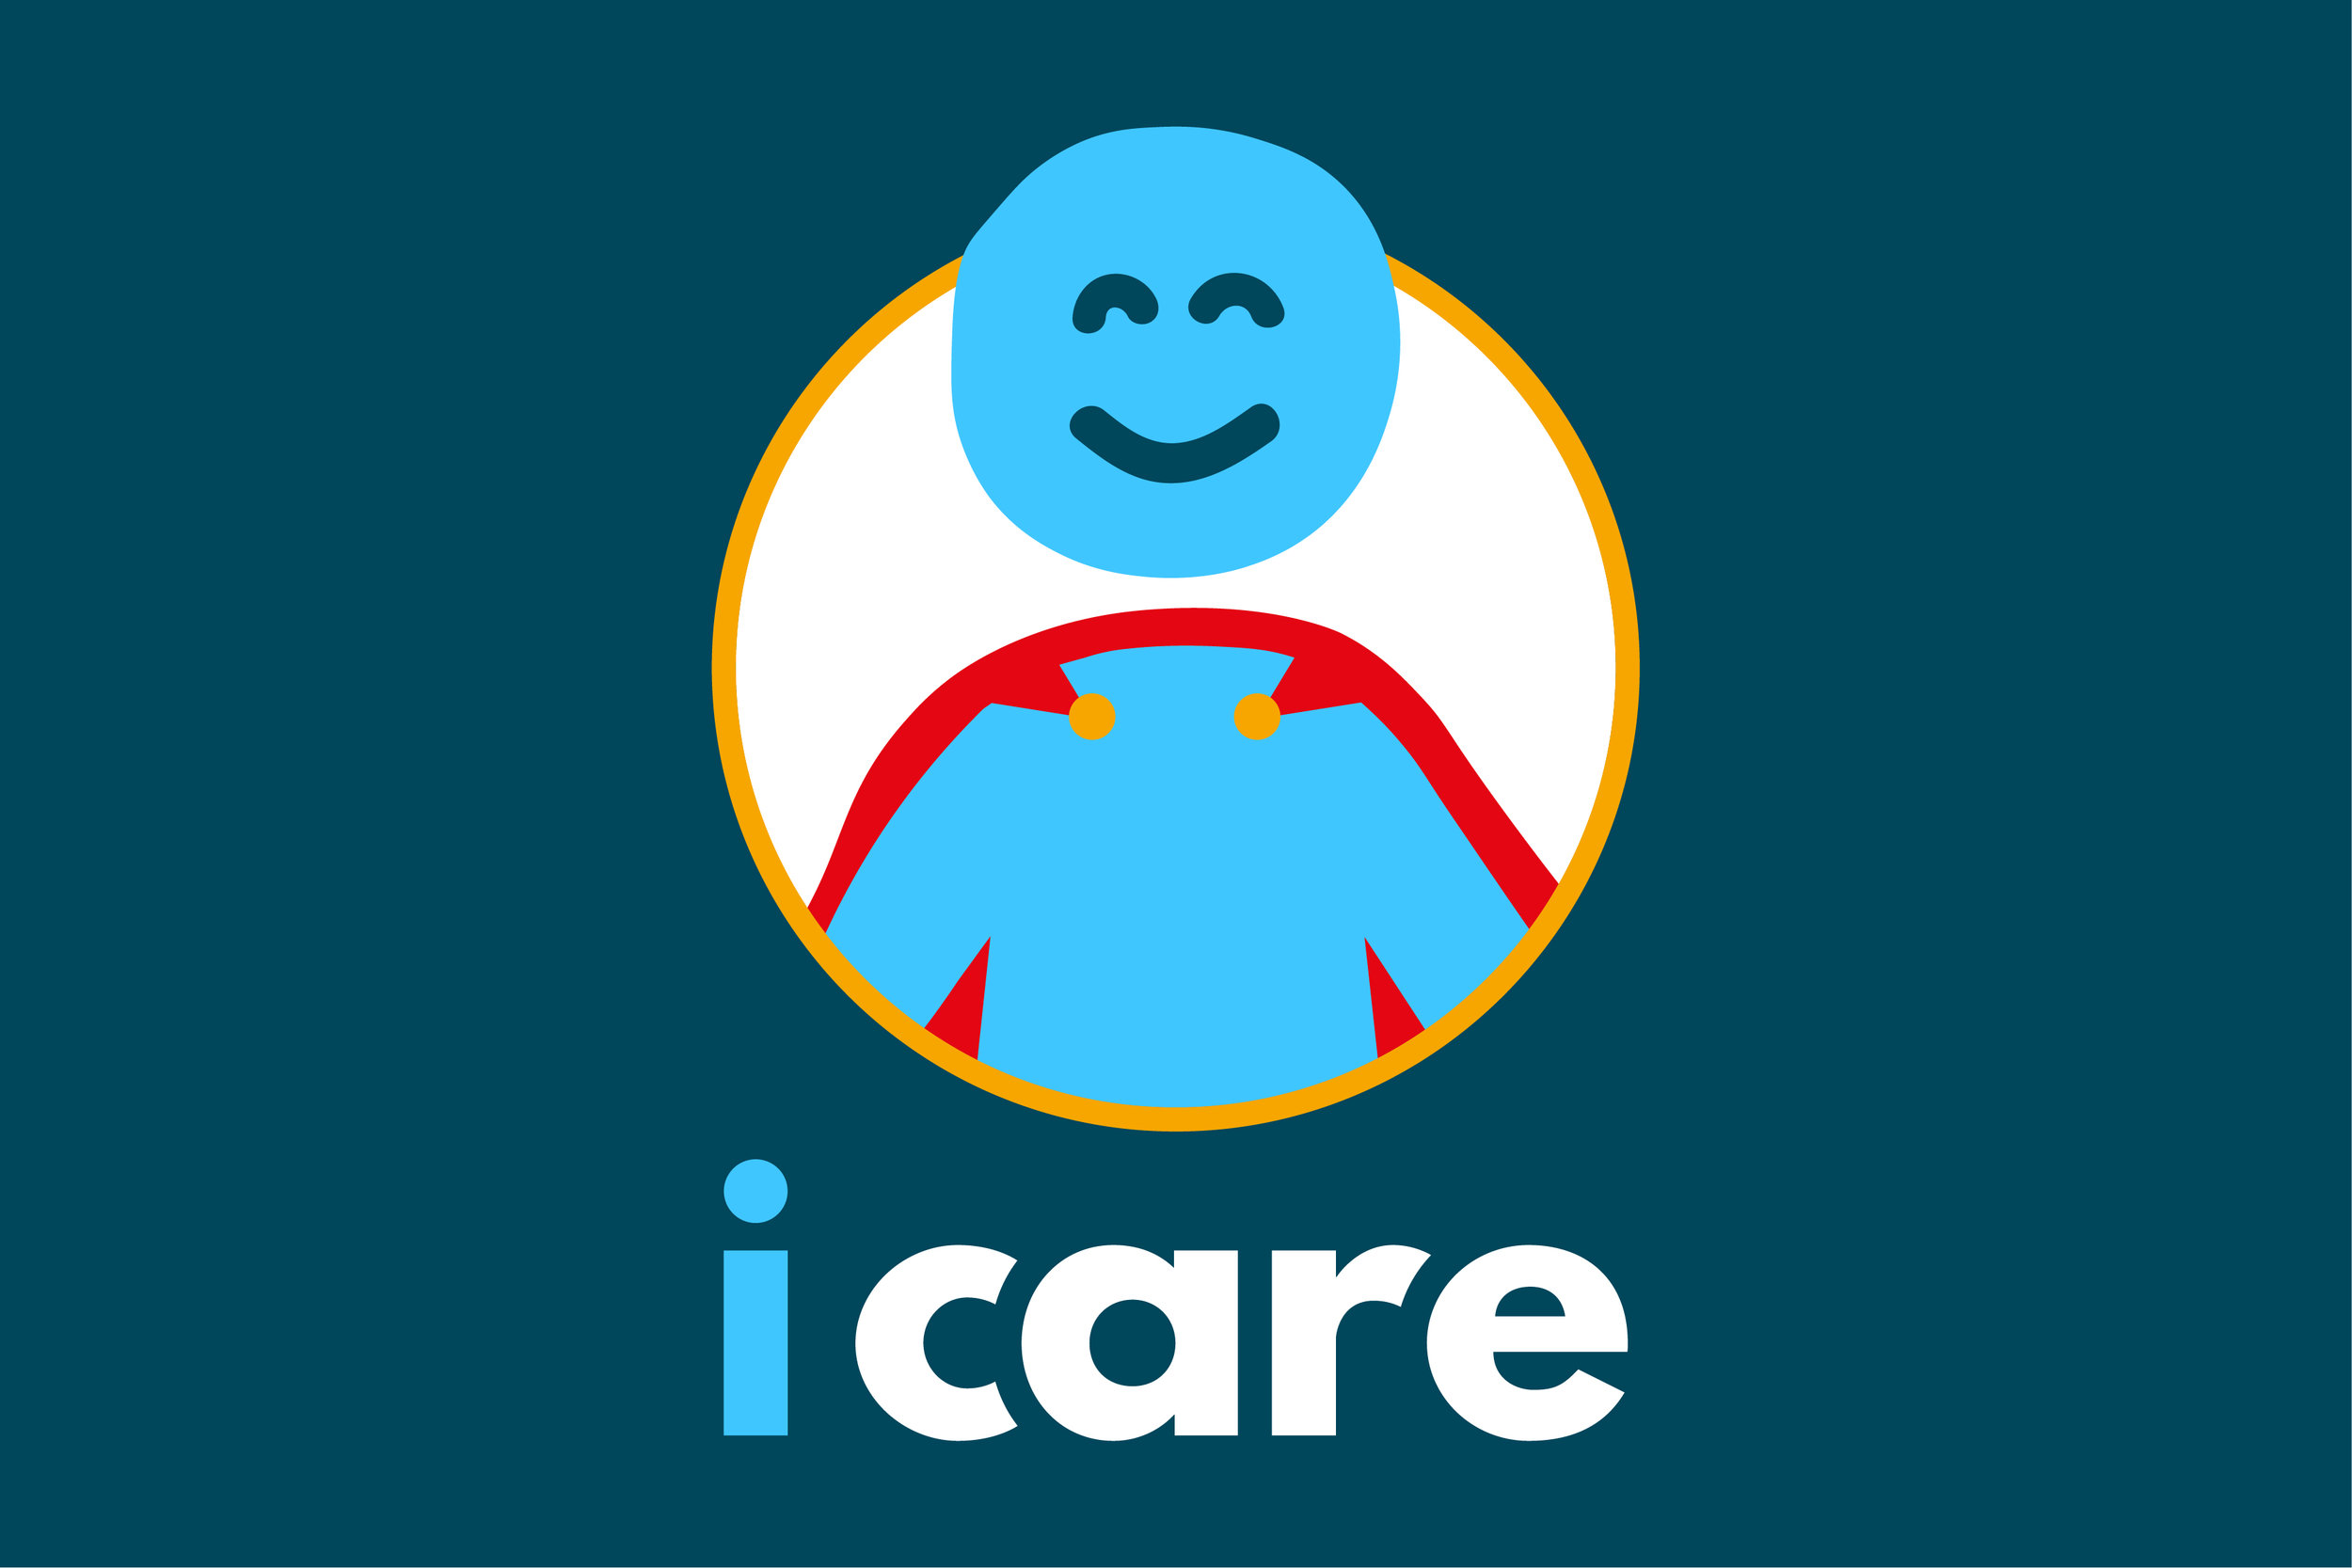 dock-i-care-logo-website-30x20cm-v1.2-01.jpg